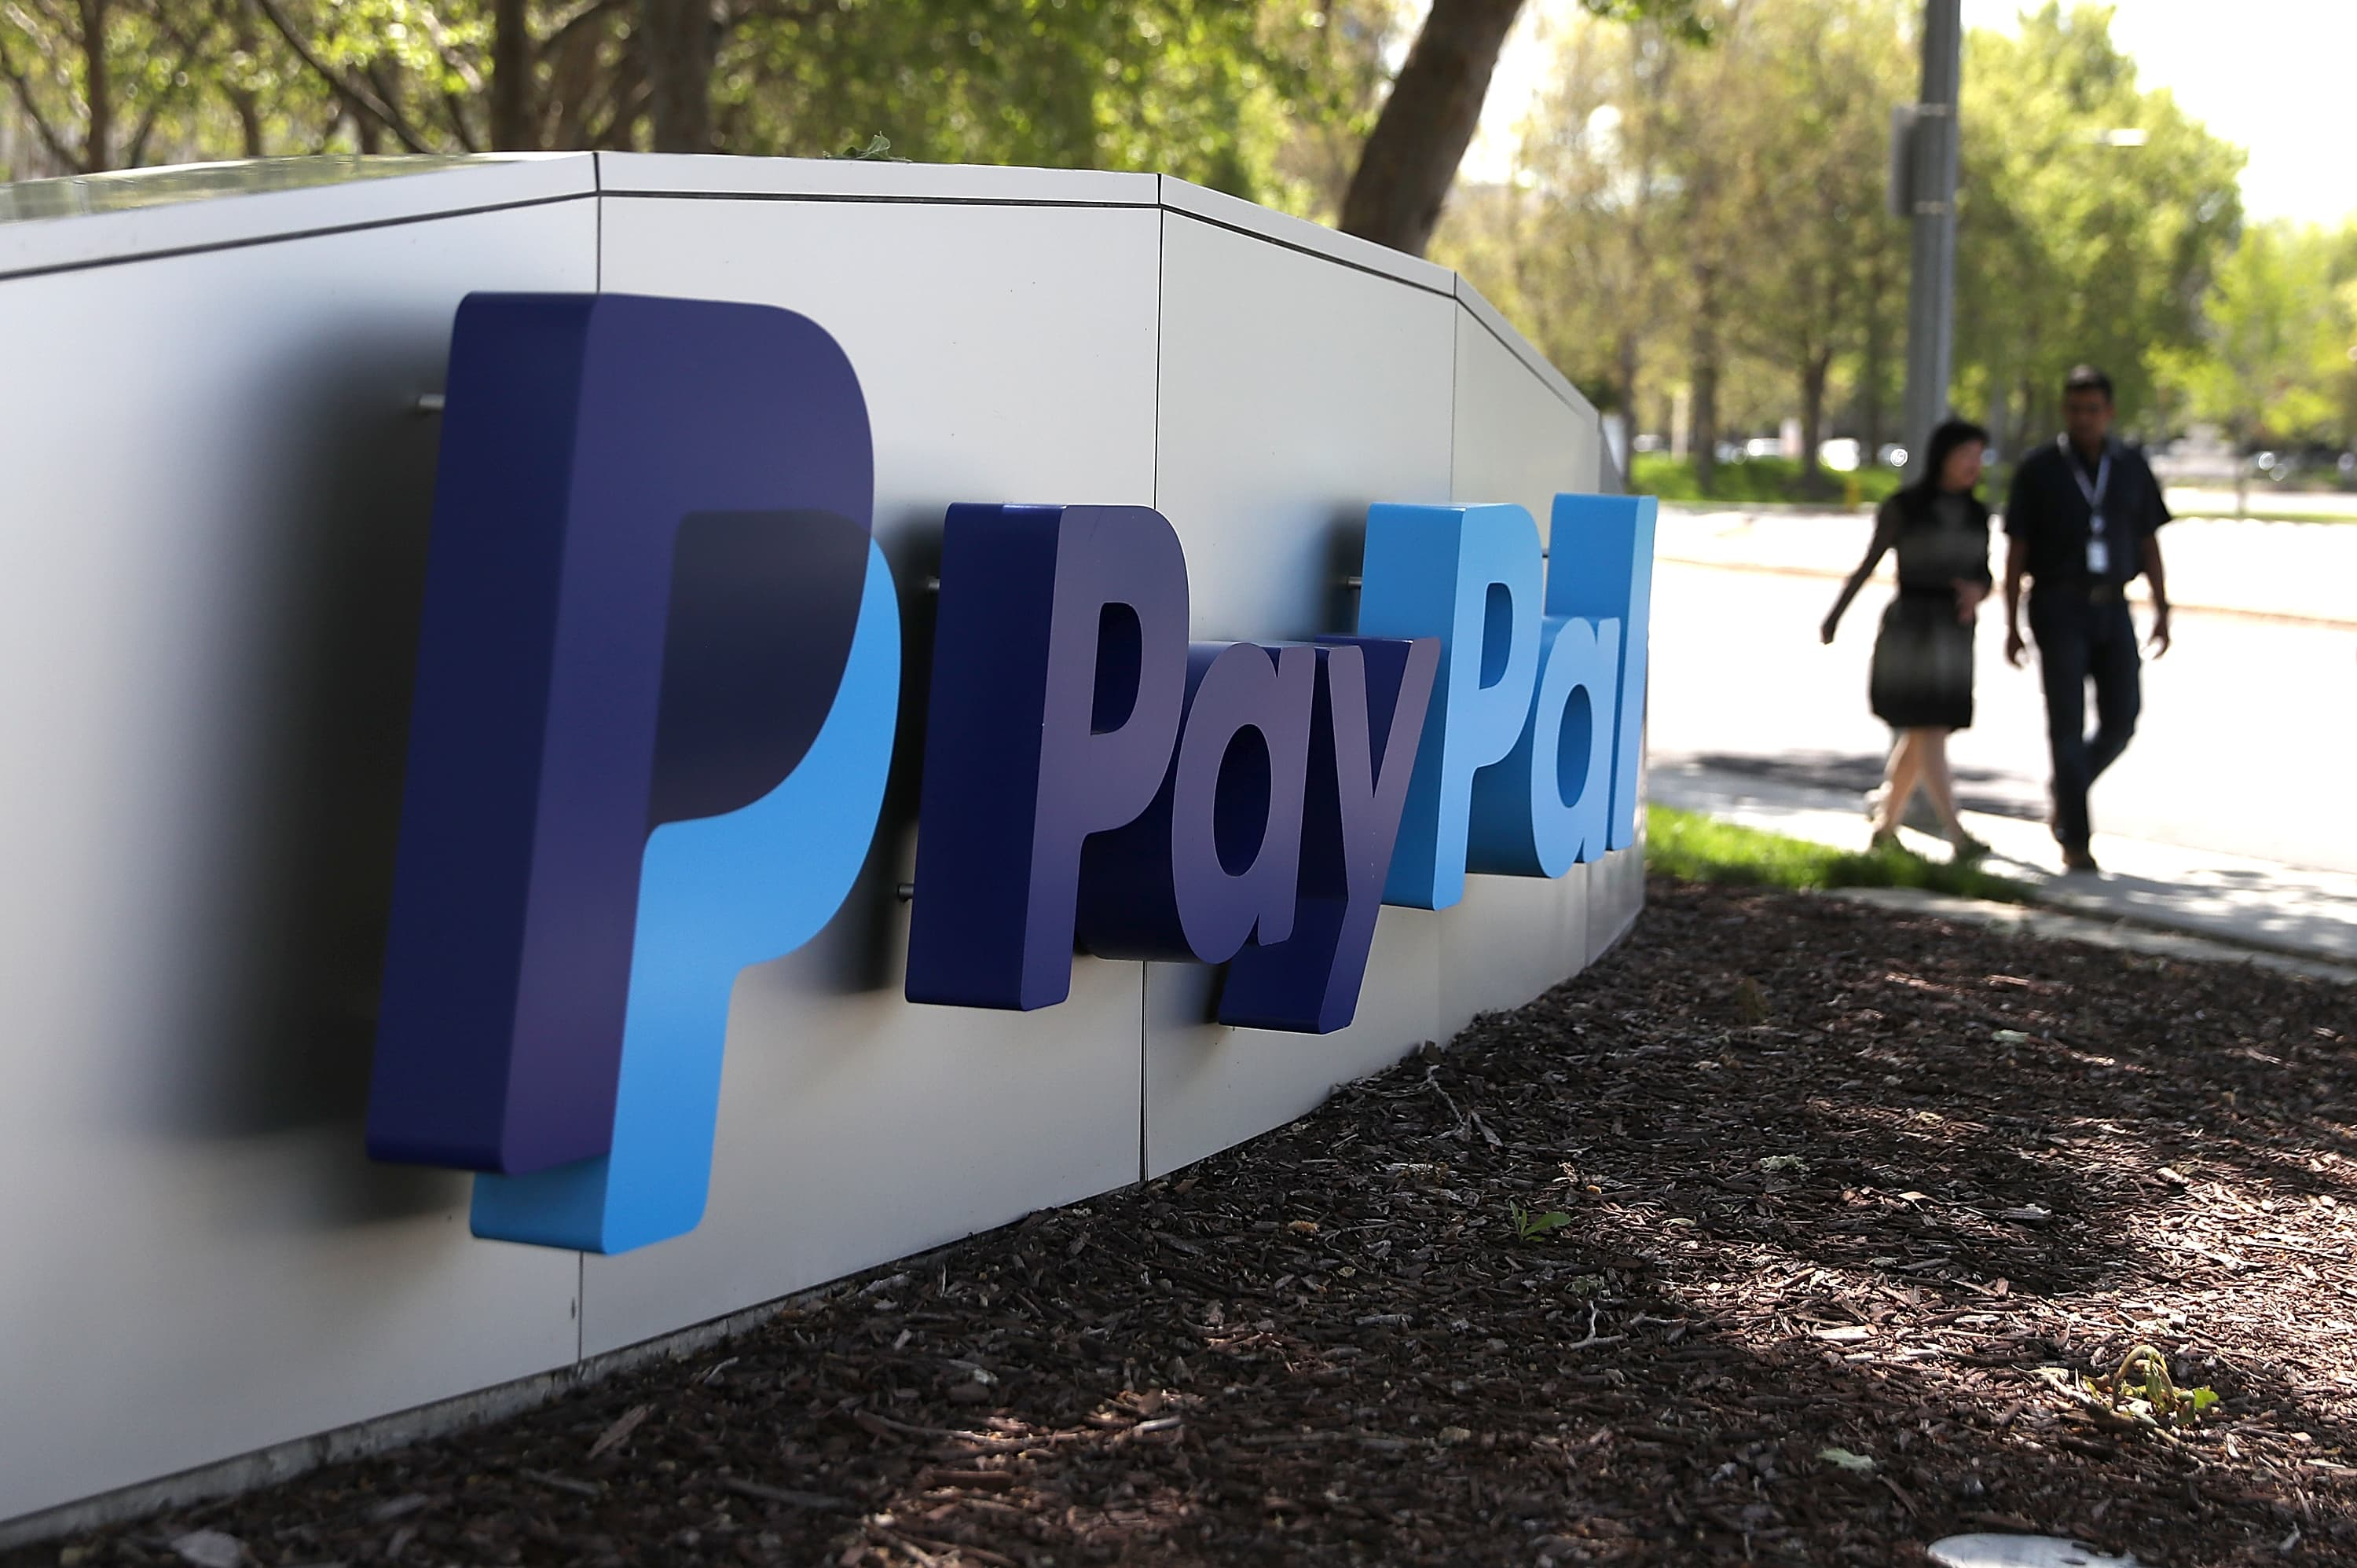 PayPal opens up access to e-commerce platform that's already used by Instagram and Facebook